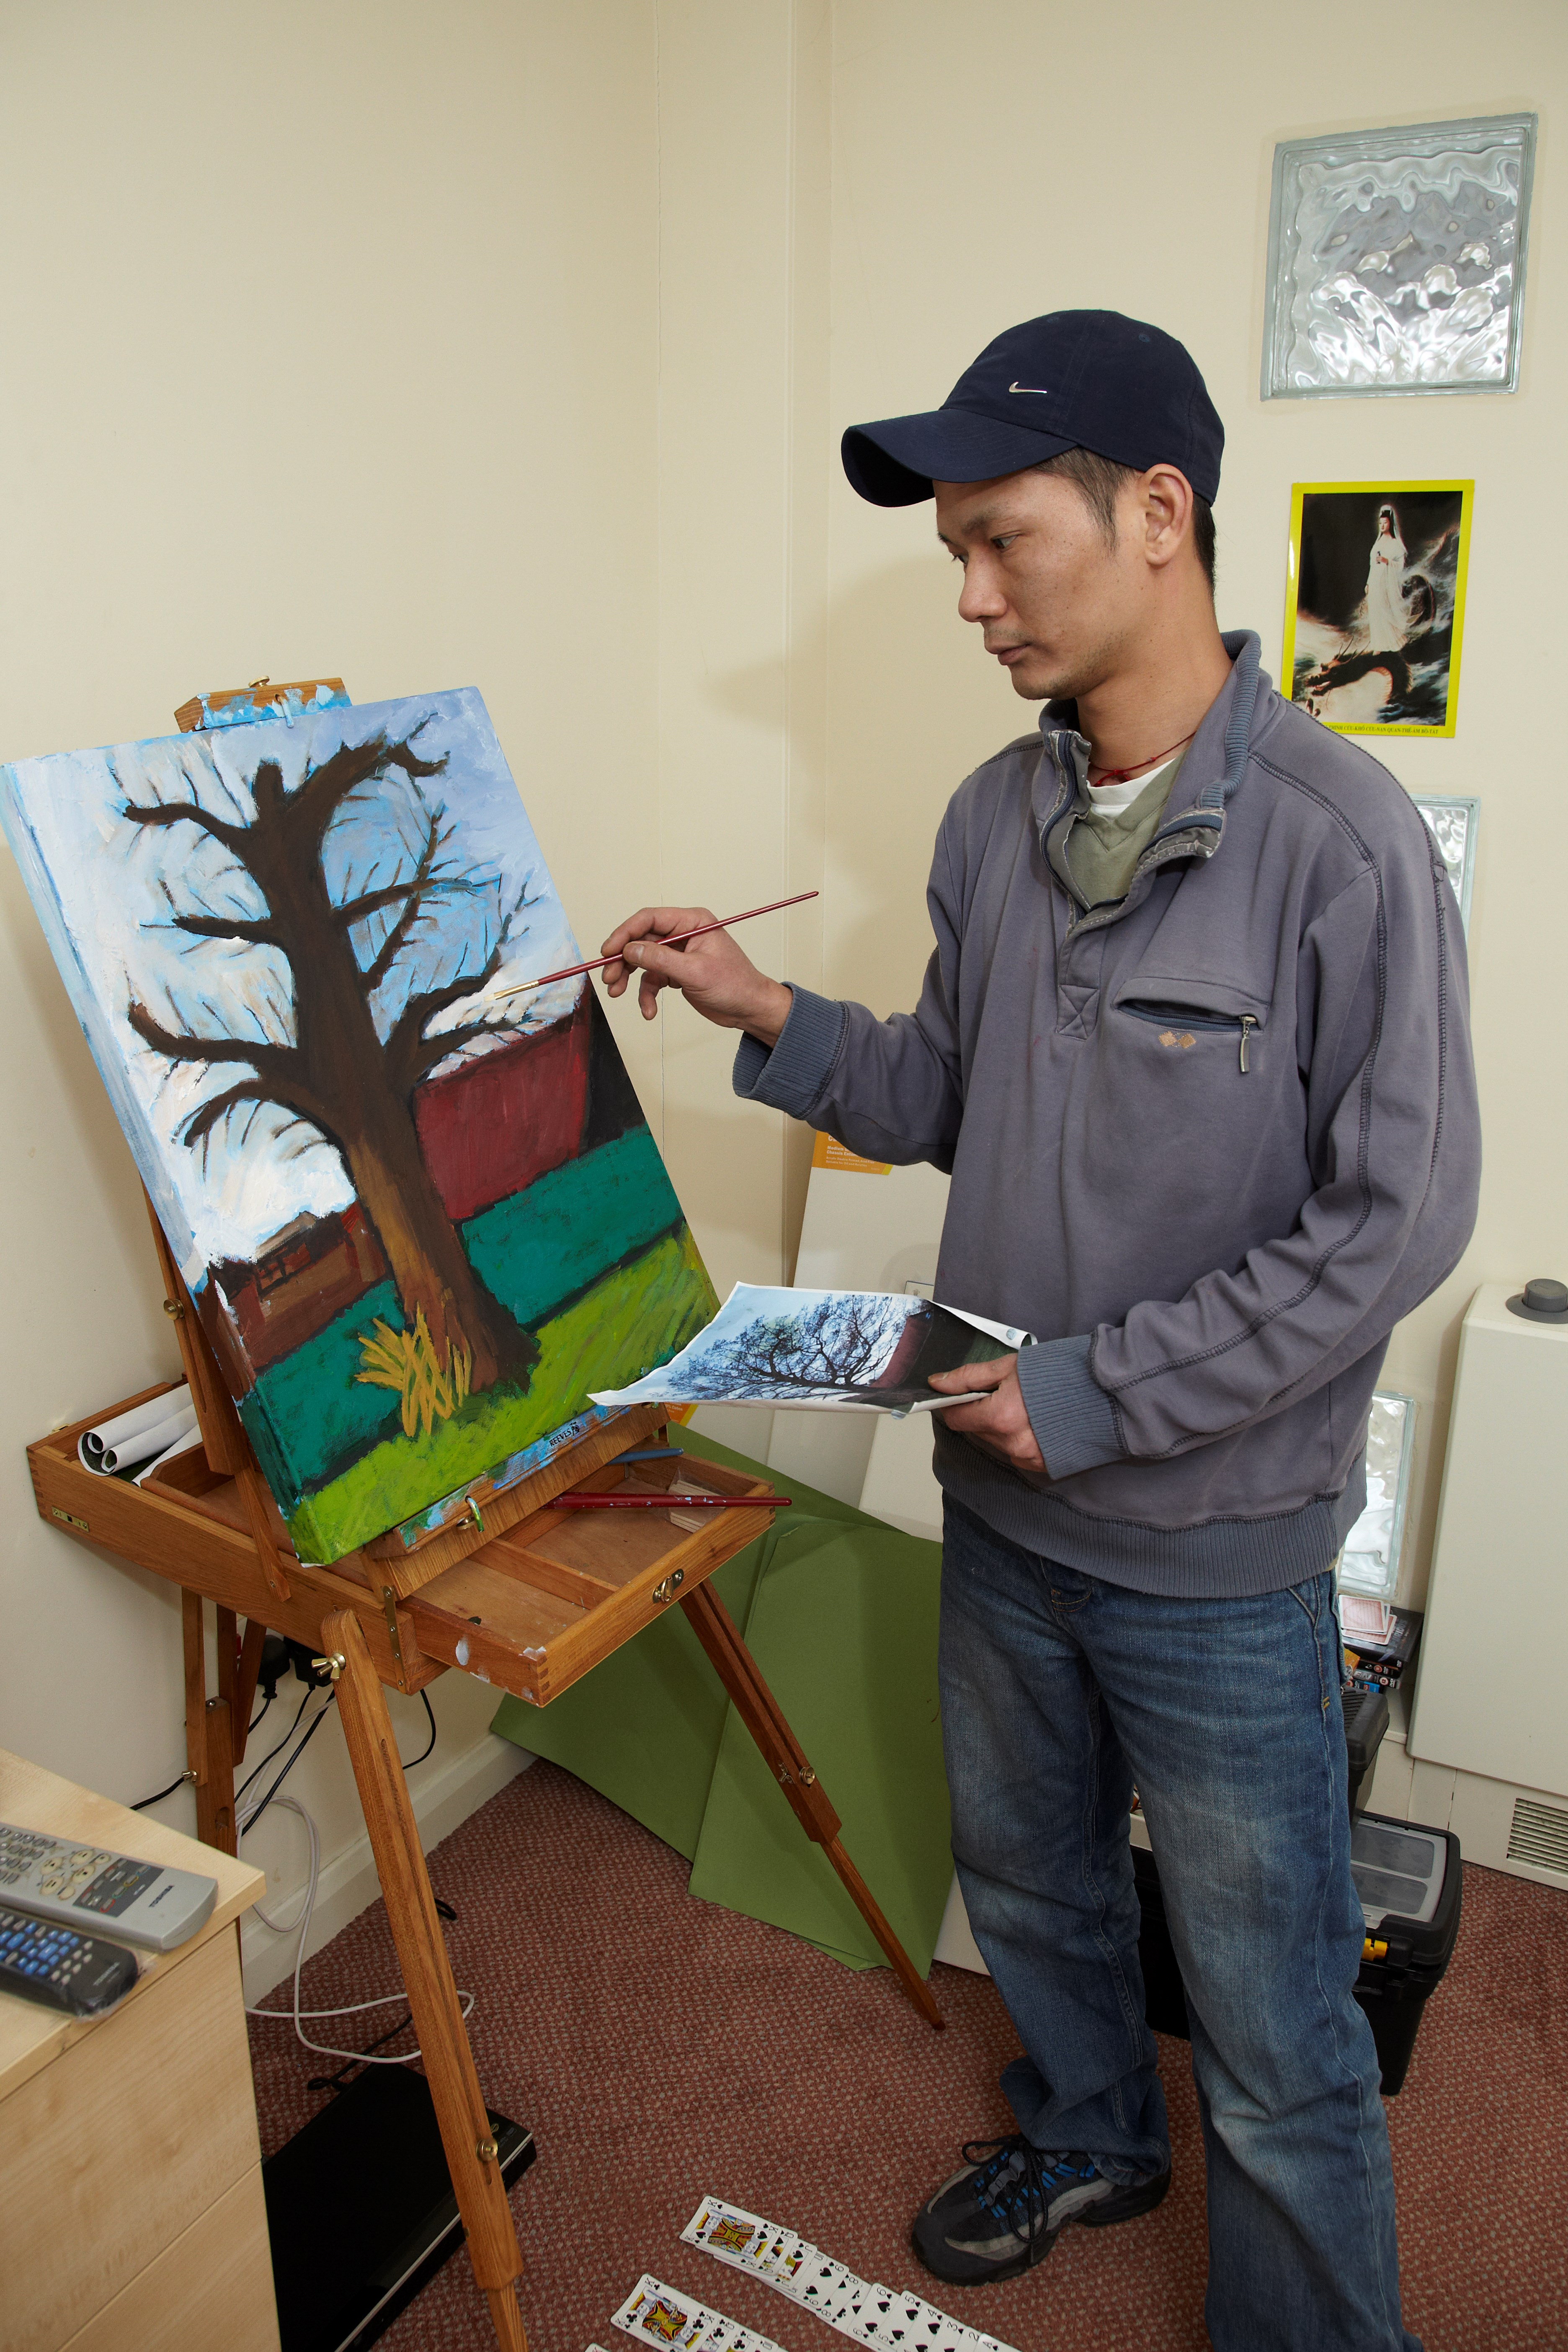 service user painting a picture of a tree in his room at Bristol Road